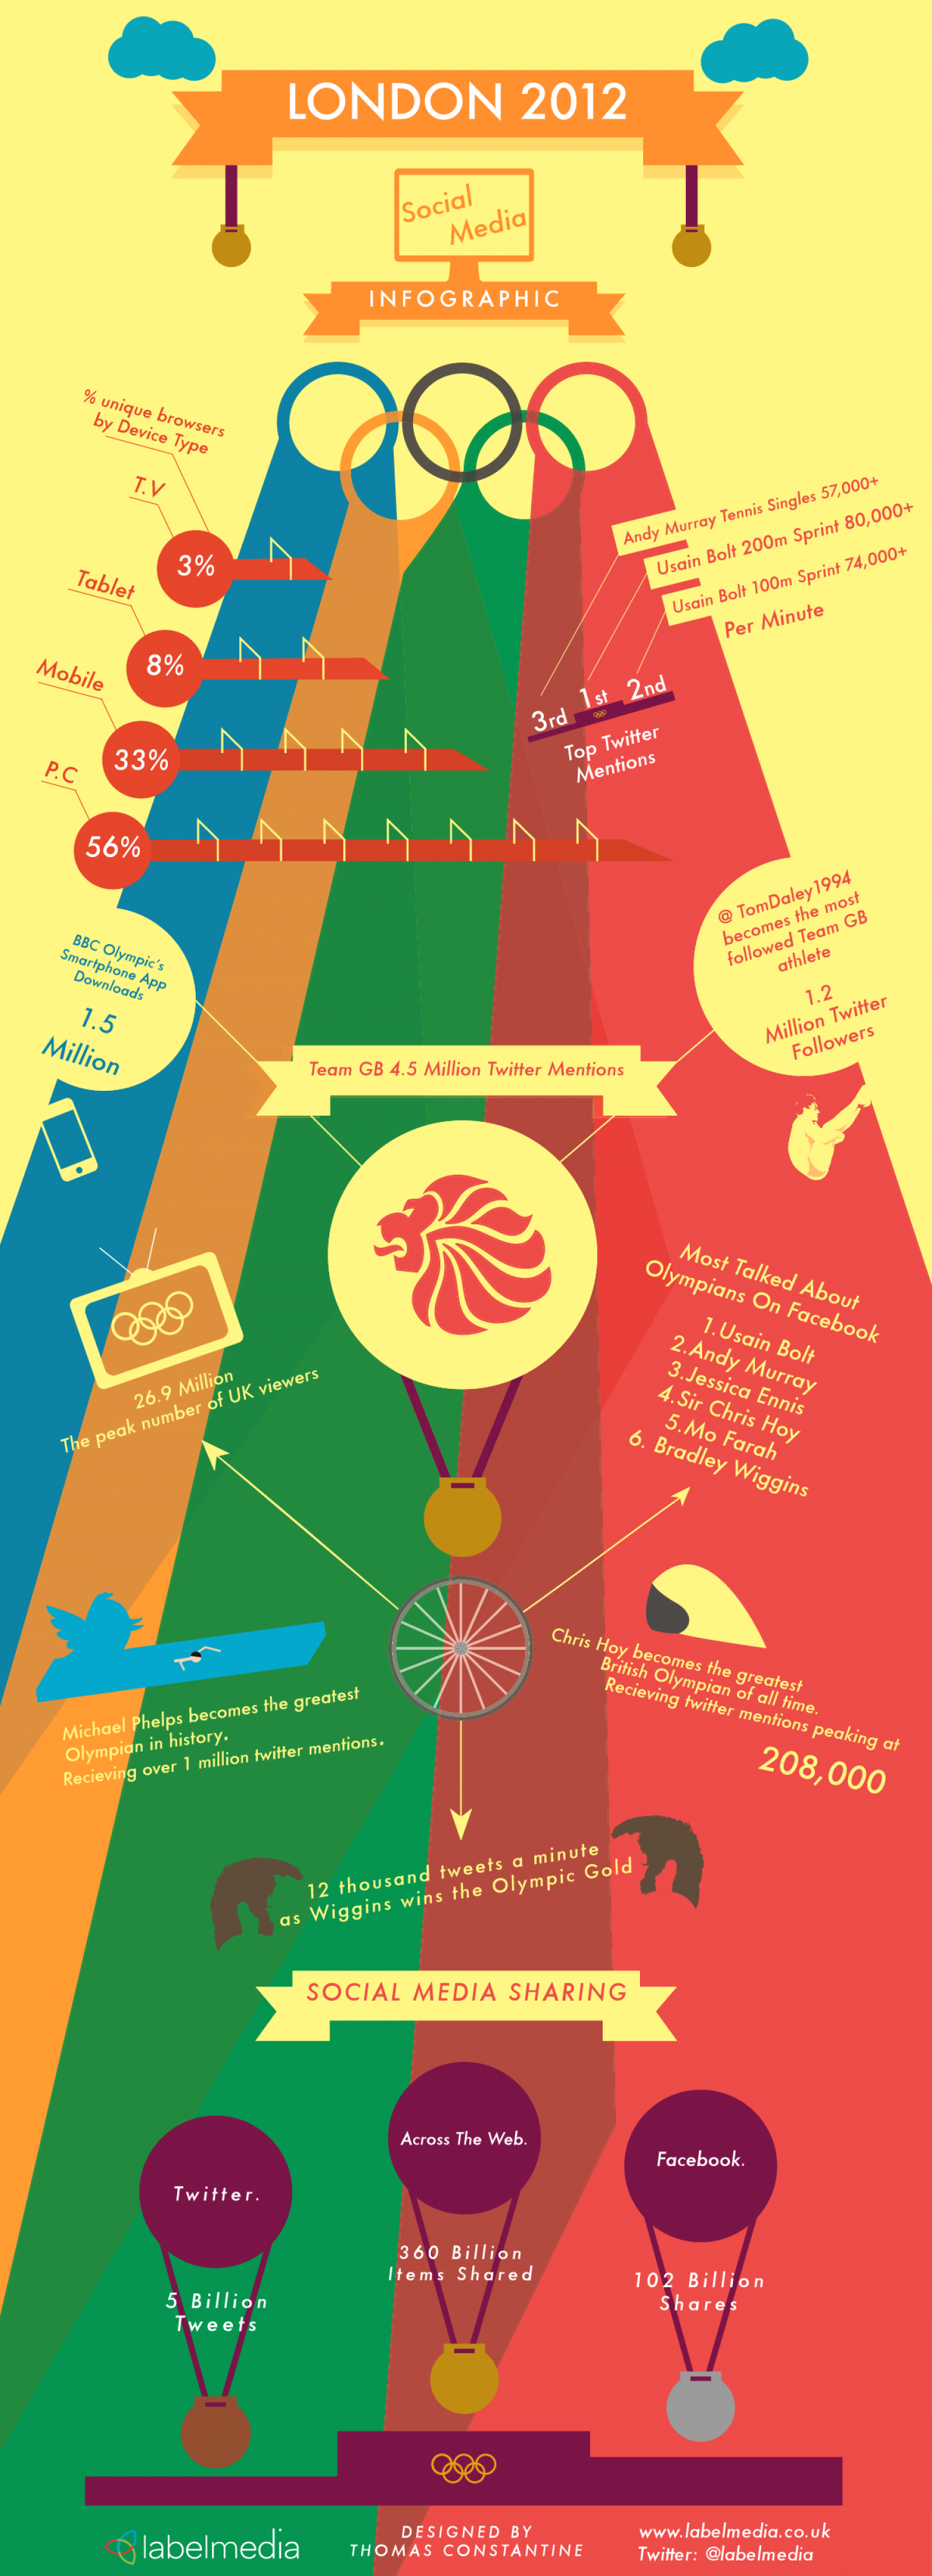 London 2012 social media infographic Infographic